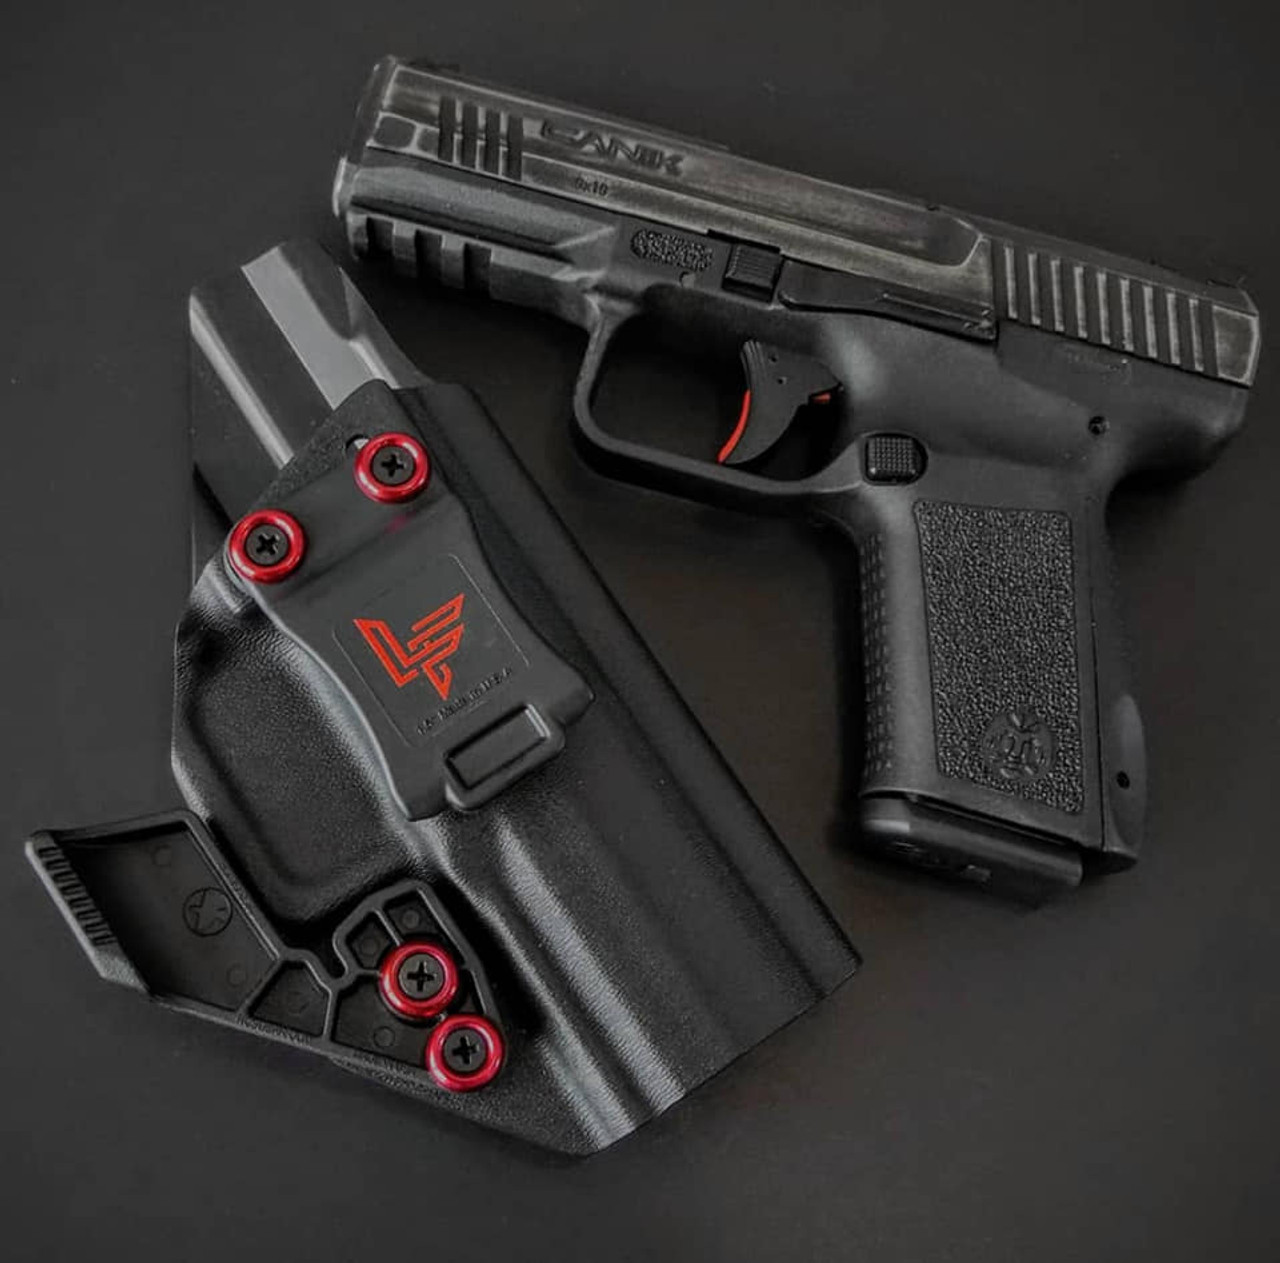 Canik TP9 SF Elite Appendix Carry Kydex Holster